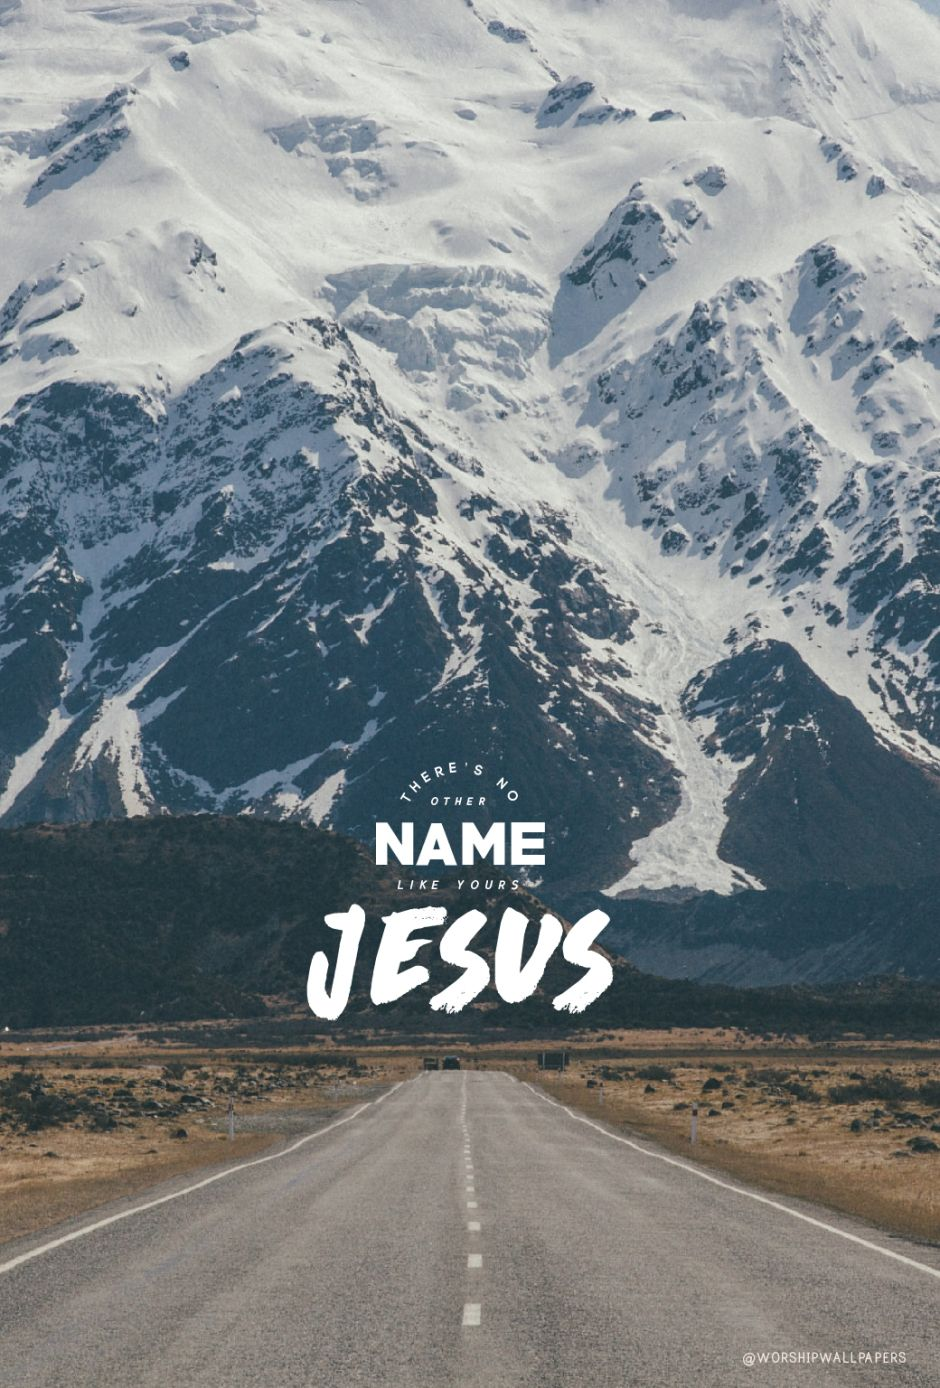 """""""There's No Other Name"""" by Paul and Hannah McClure // Phone screen wallpaper format // Like us on Facebook www.facebook.com/worshipwallpapers // Follow us on Instagram @worshipwallpapers"""